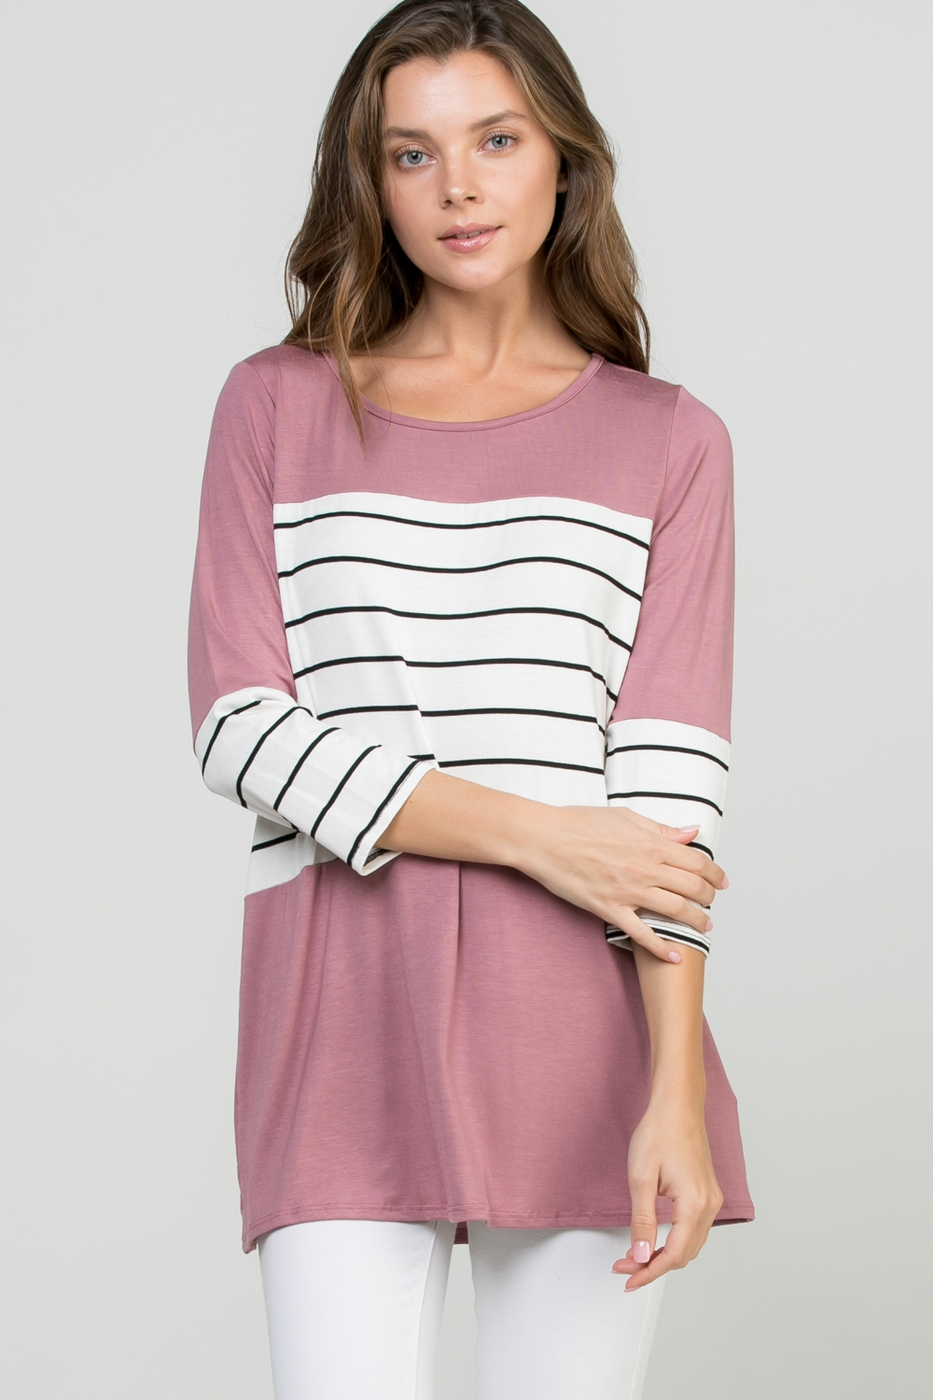 SOLID AND STRIPE PRINT TOP - orangeshine.com